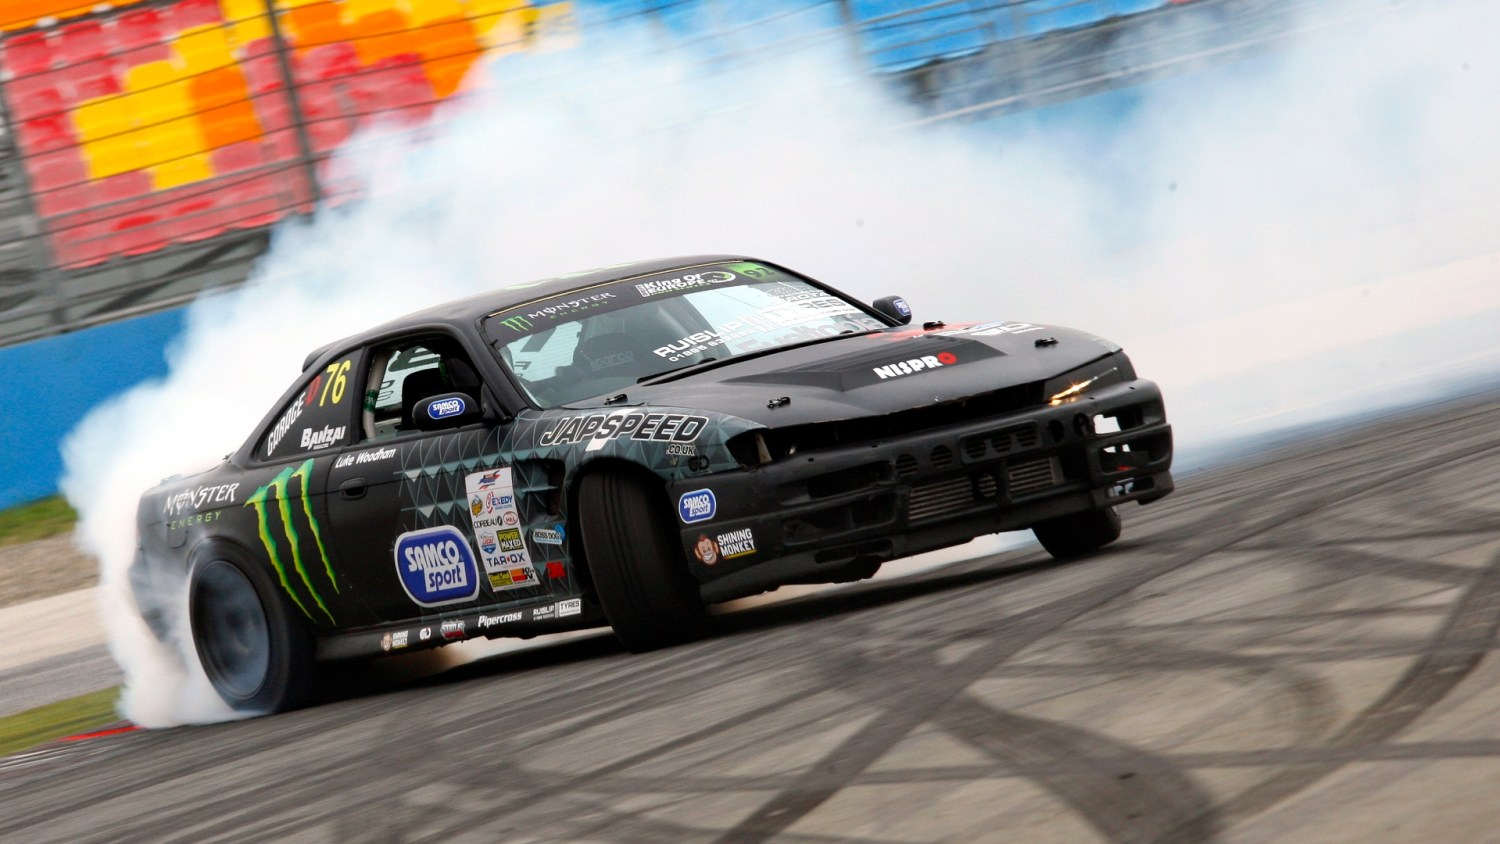 Drifting driving experience popularity is up